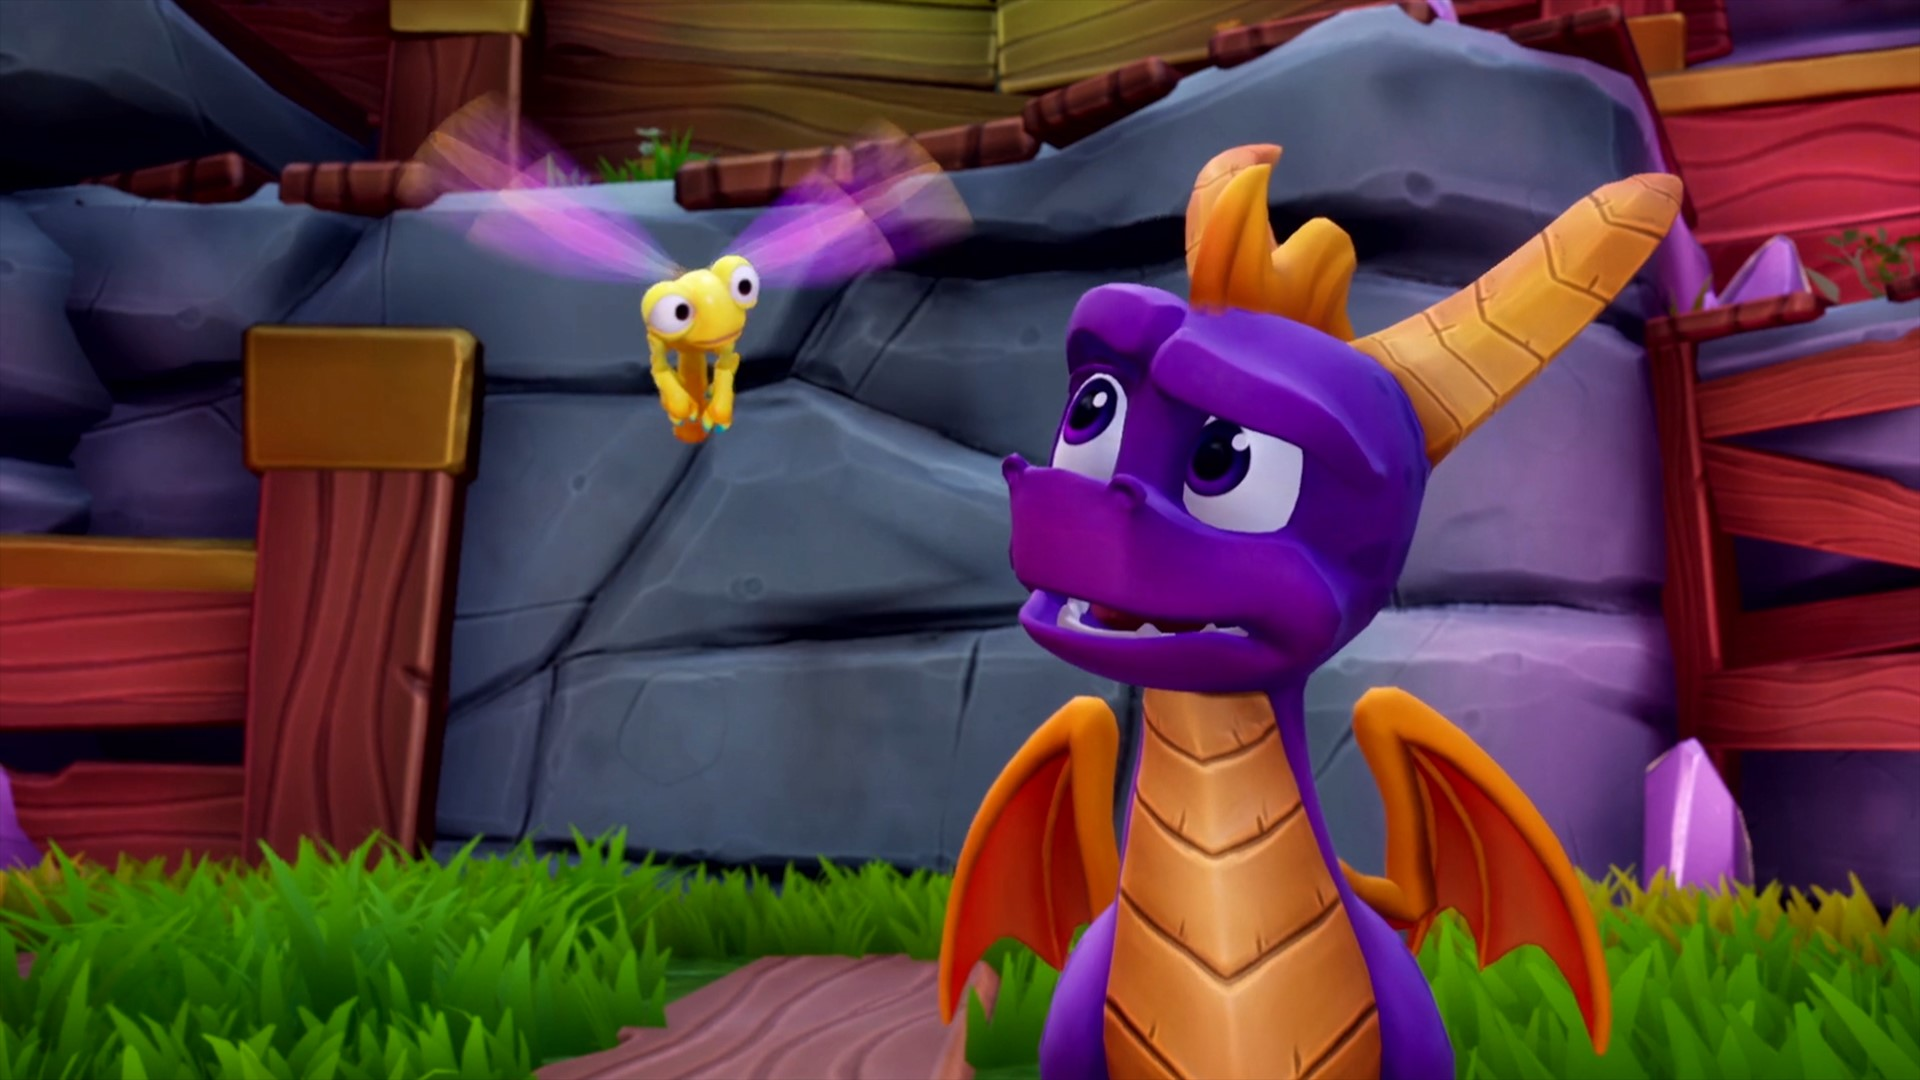 Spyro Reignited Trilogy could be getting a Nintendo Switch release this summer